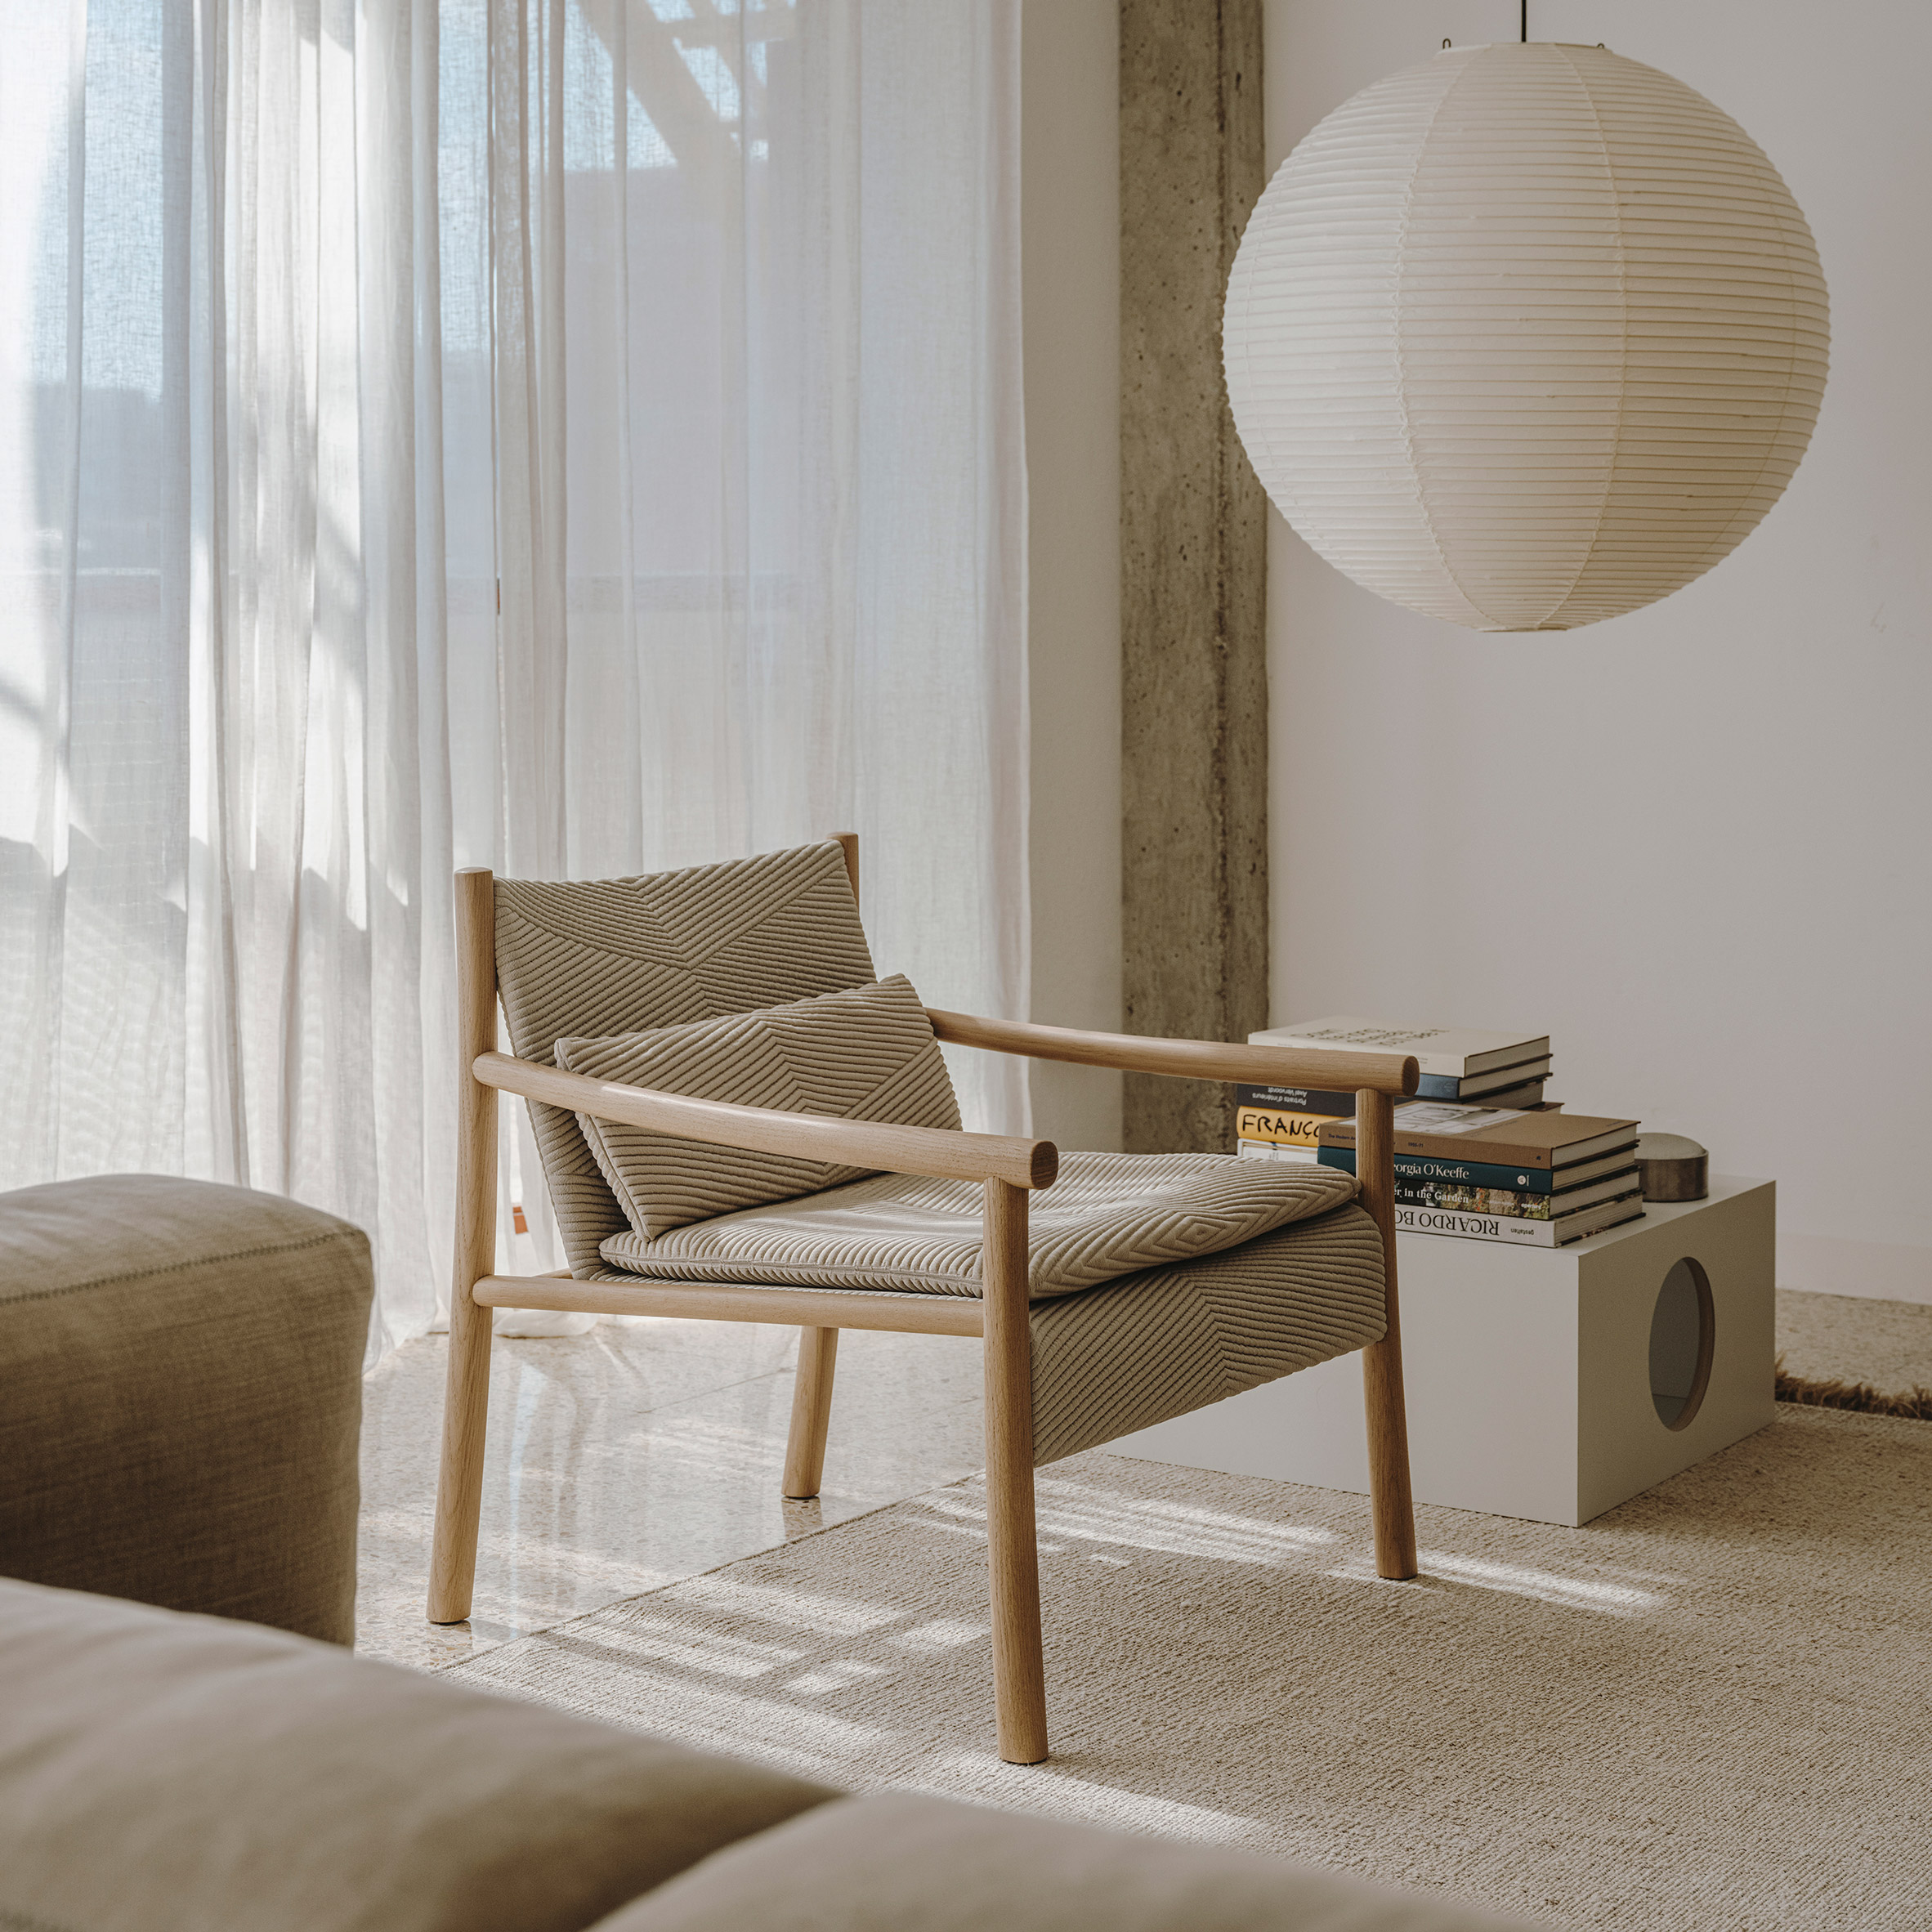 Kata chair by Altherr Désile Park for Arper